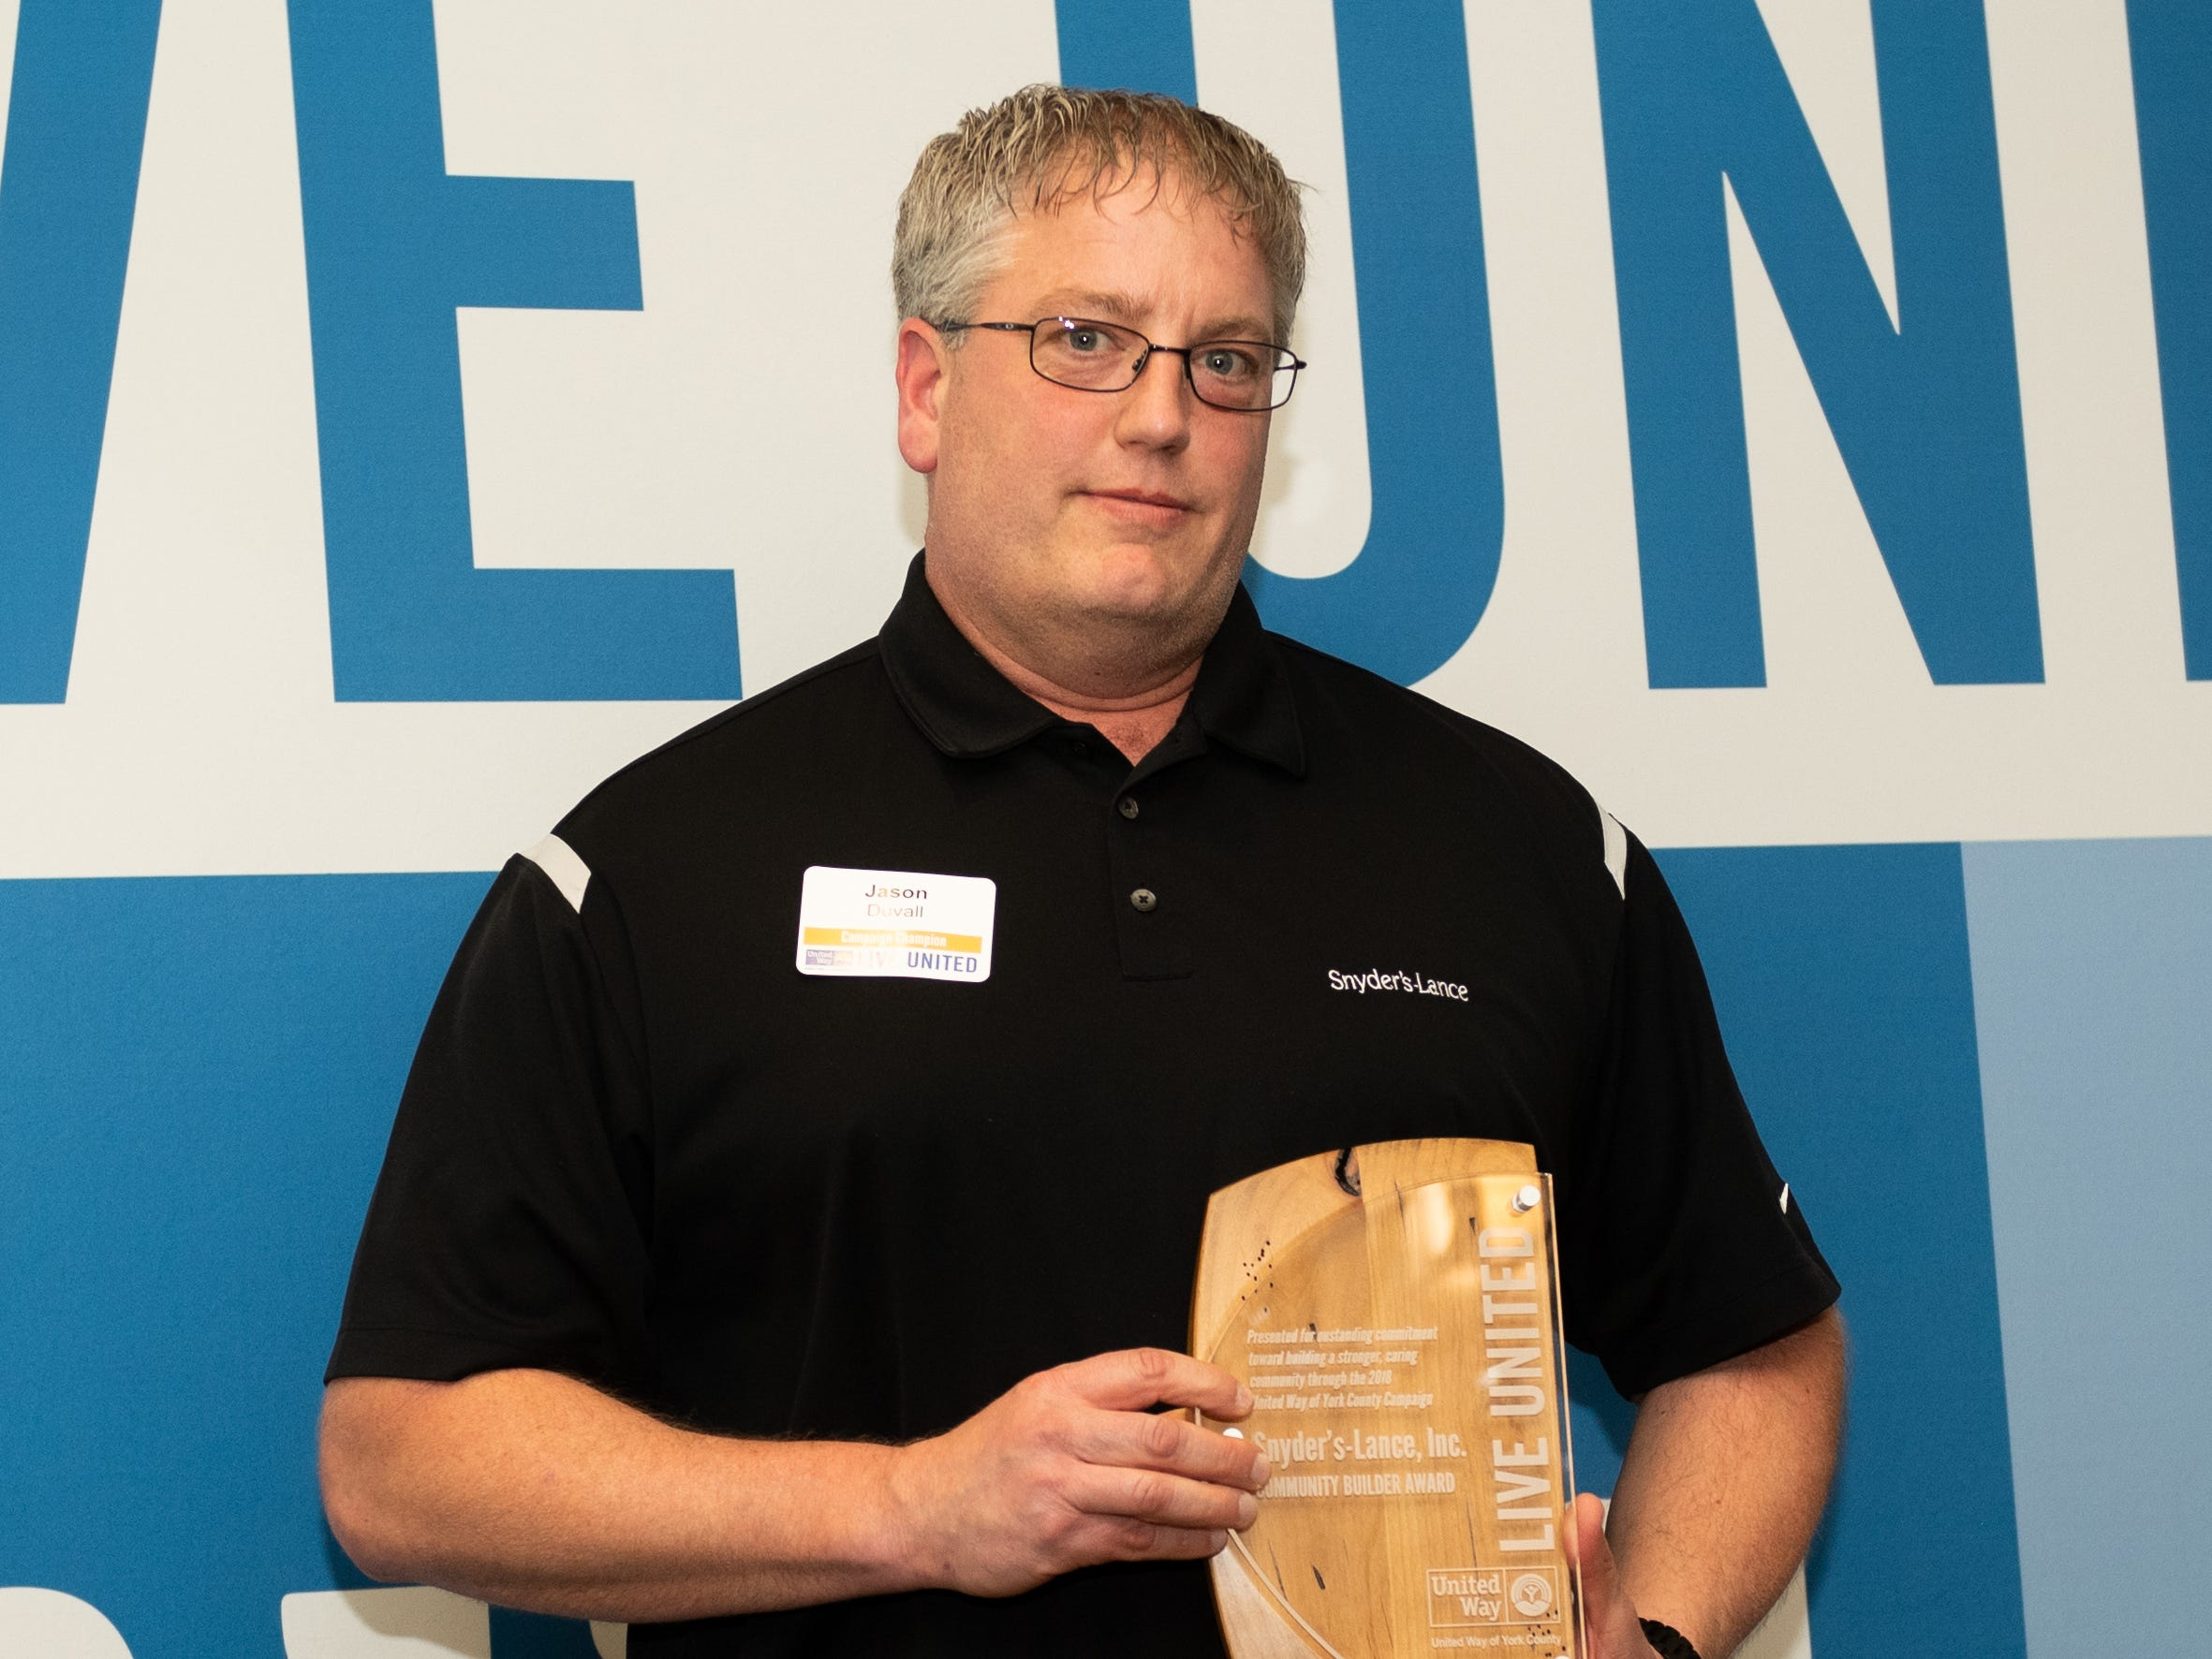 A Representative of Snyder's-Lance, Inc. poses with a Community Builder Award during the 2018 United Way Campaign Celebration, February 7, 2019.